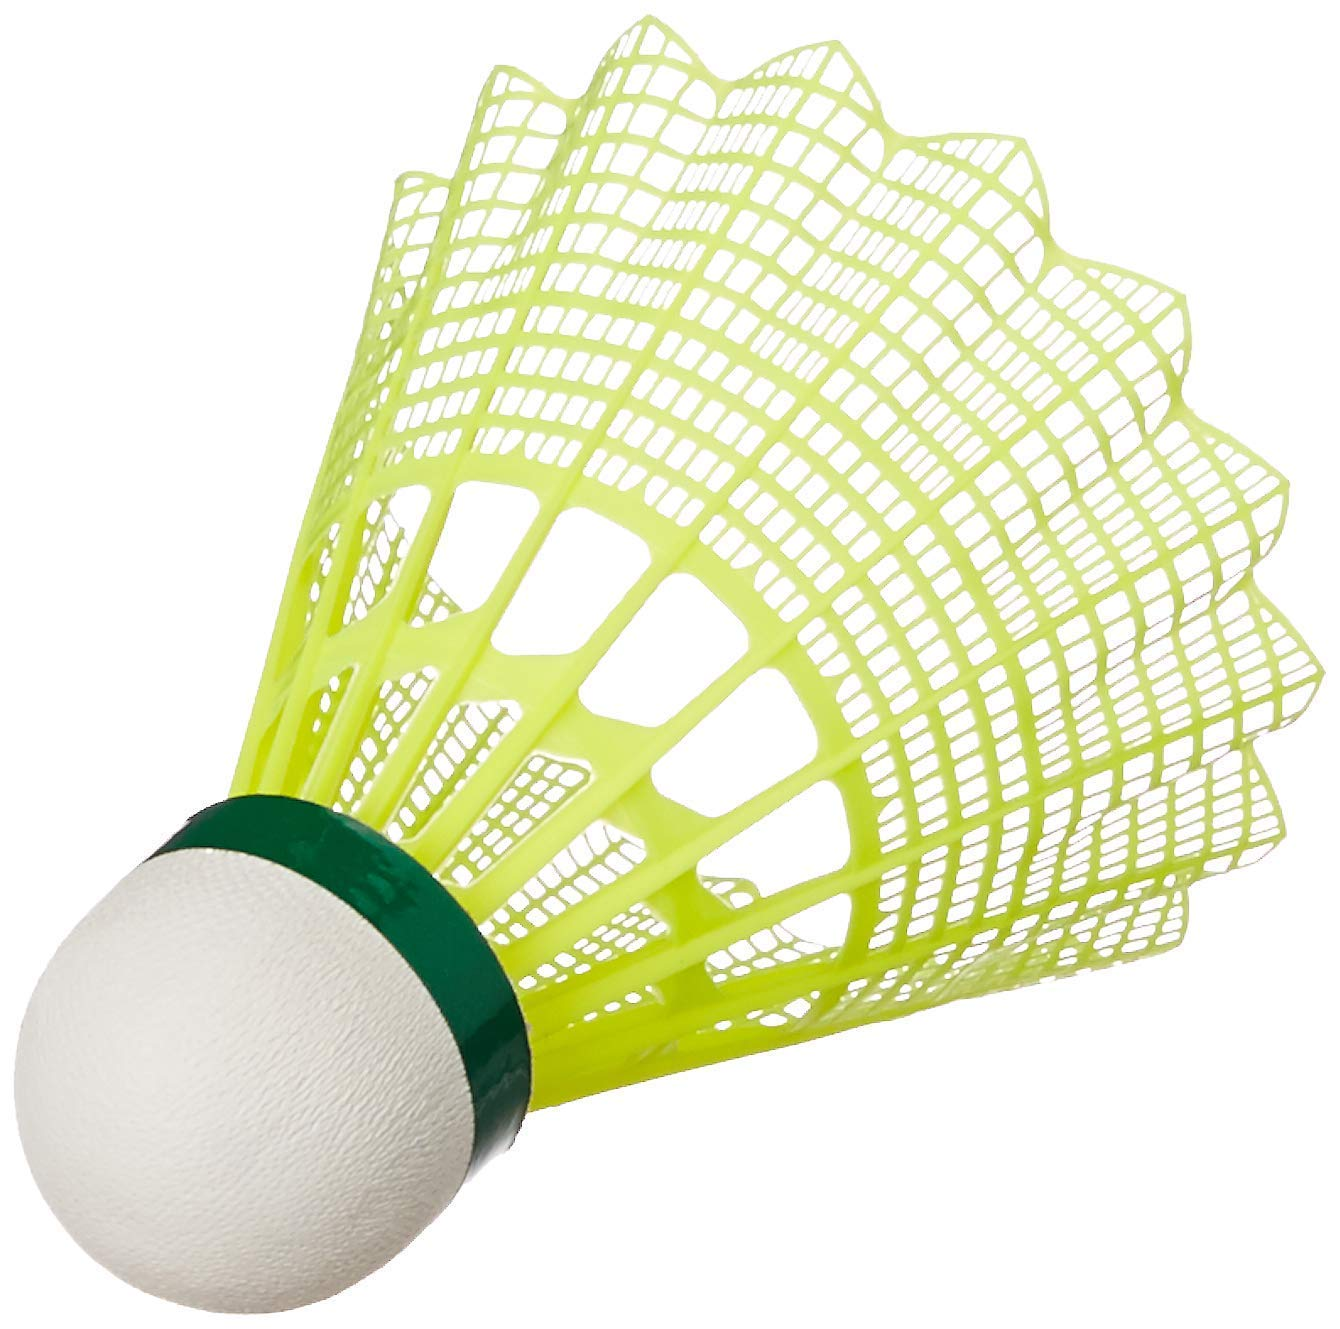 Badminton Riddles